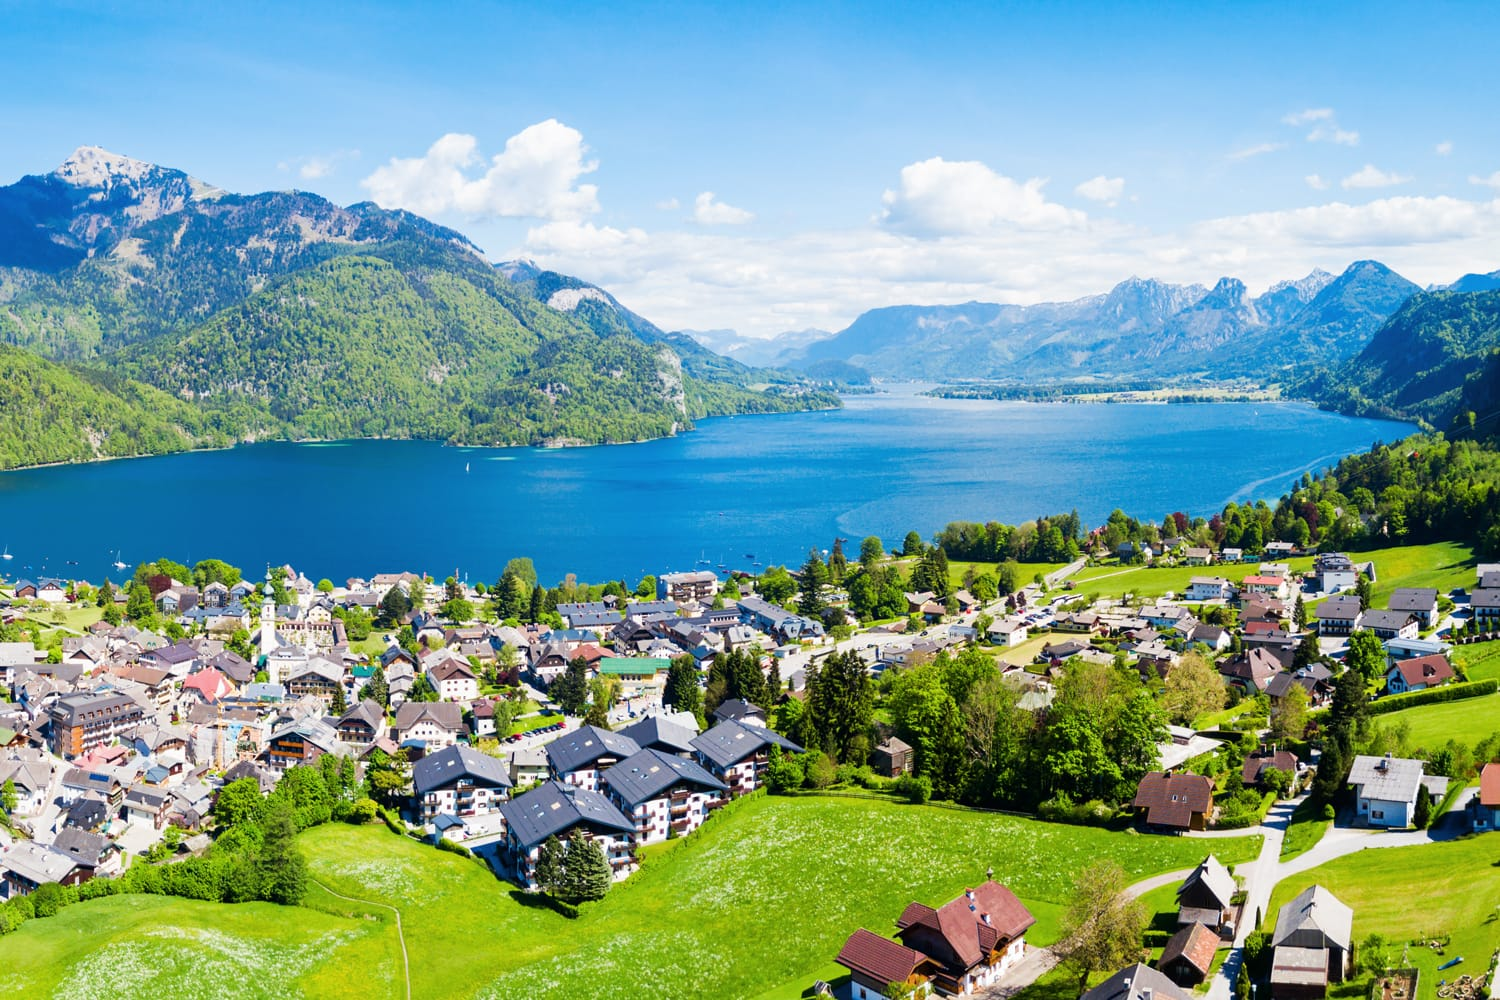 St. Gilgen and Wolfgangsee lake aerial panoramic view in Salzkammergut region in Austria